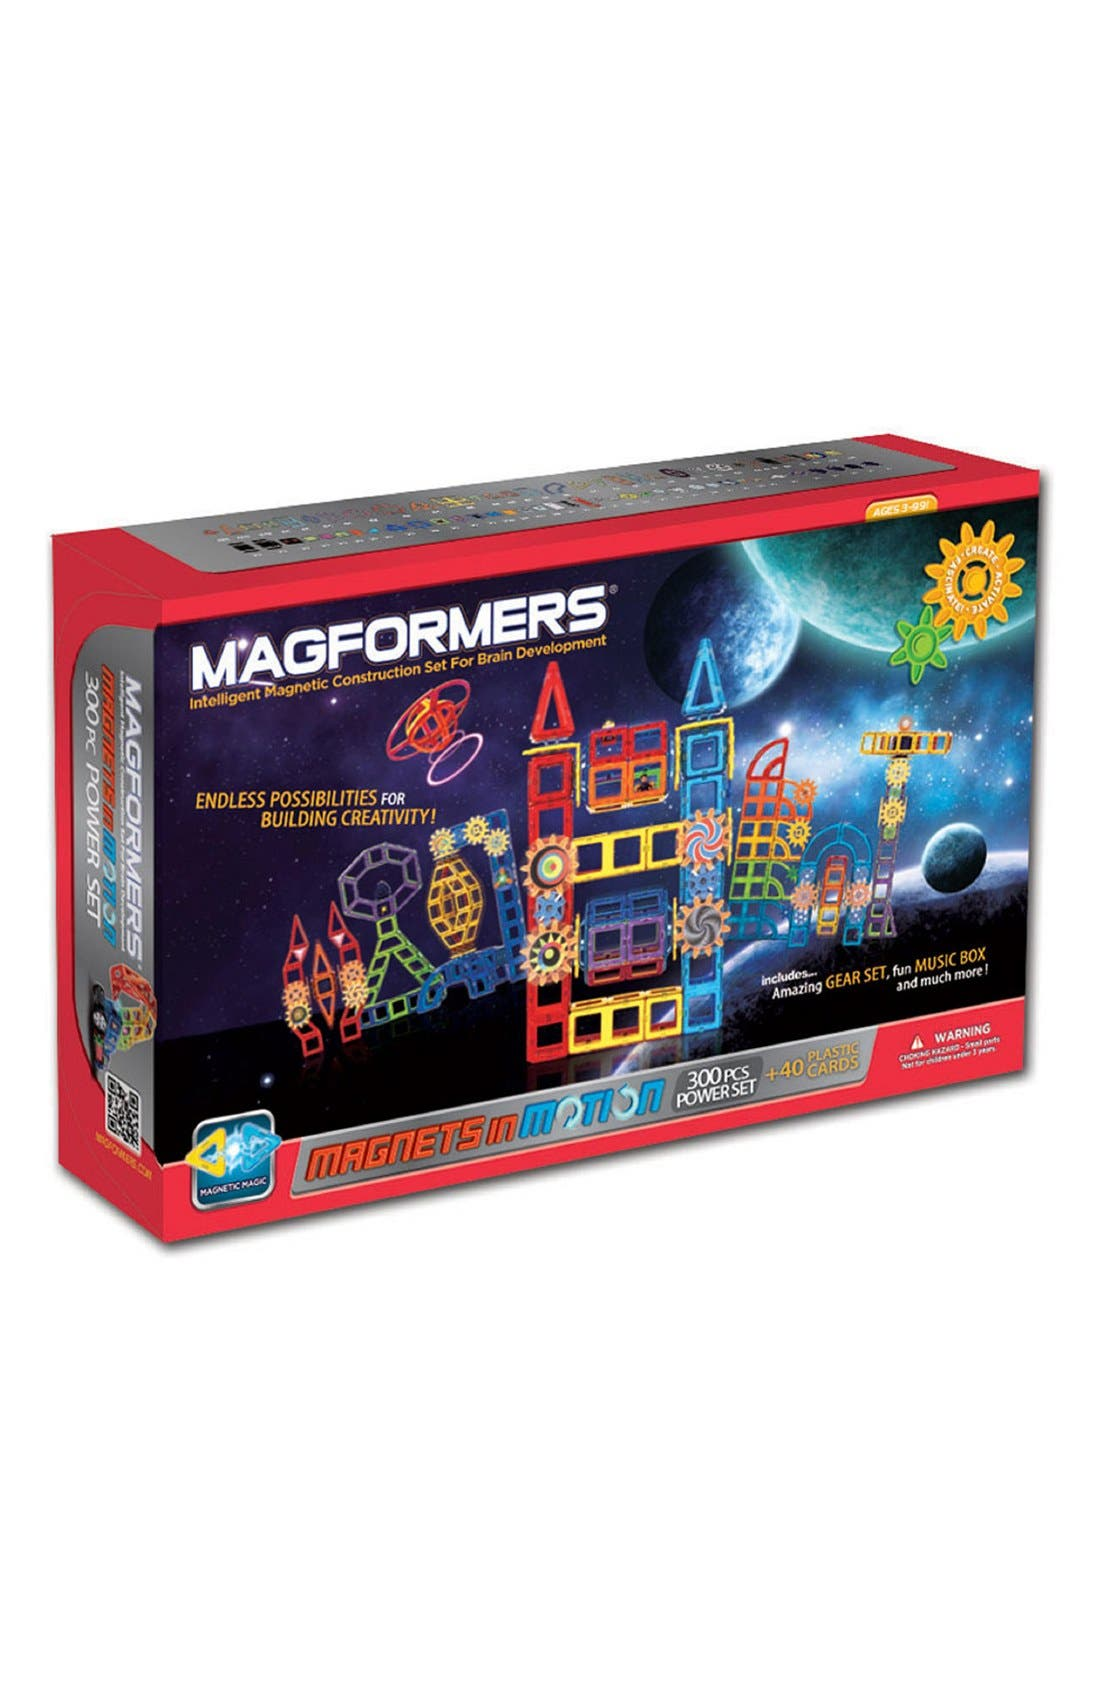 Alternate Image 1 Selected - Magformers 'Magnets in Motion' Power Set (300-Piece)